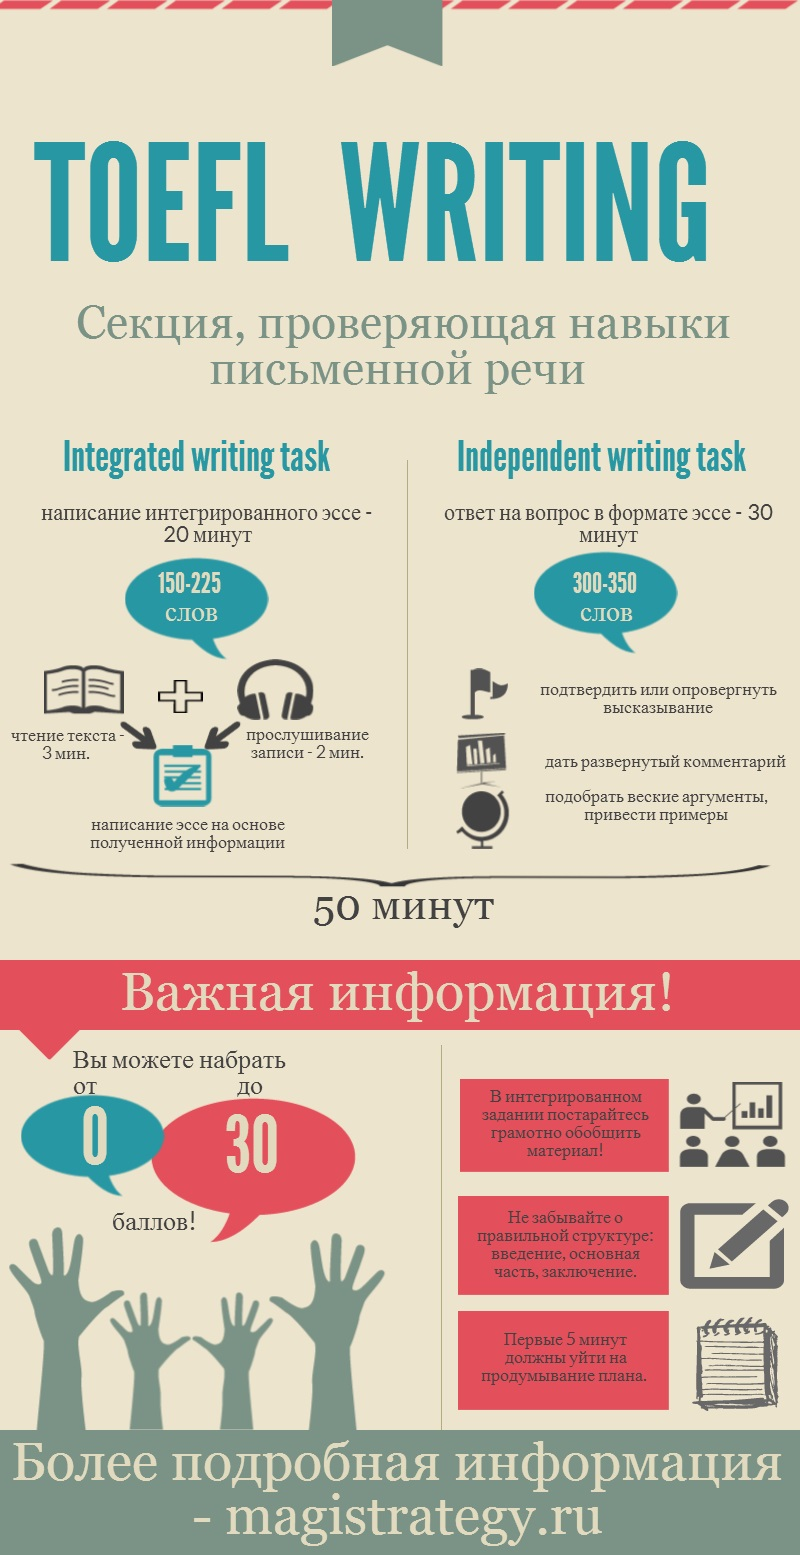 Все о TOEFL Writing в инфографике от Magistrategy